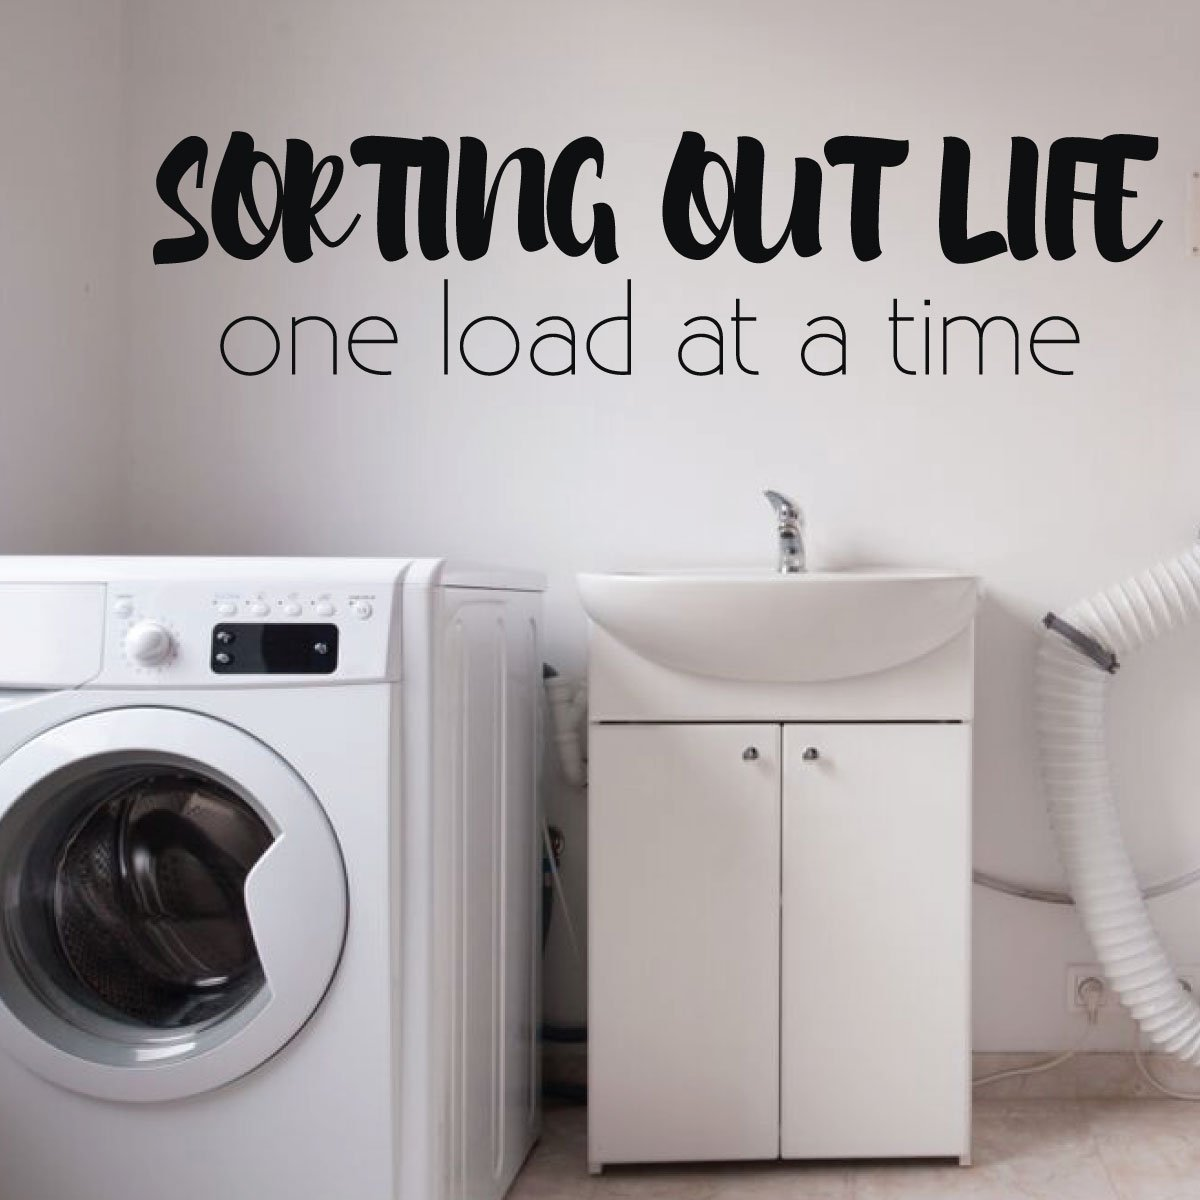 Sorting Out Life Quote Laundry Room Vinyl Decor Wall Decal Customvinyldecor Com